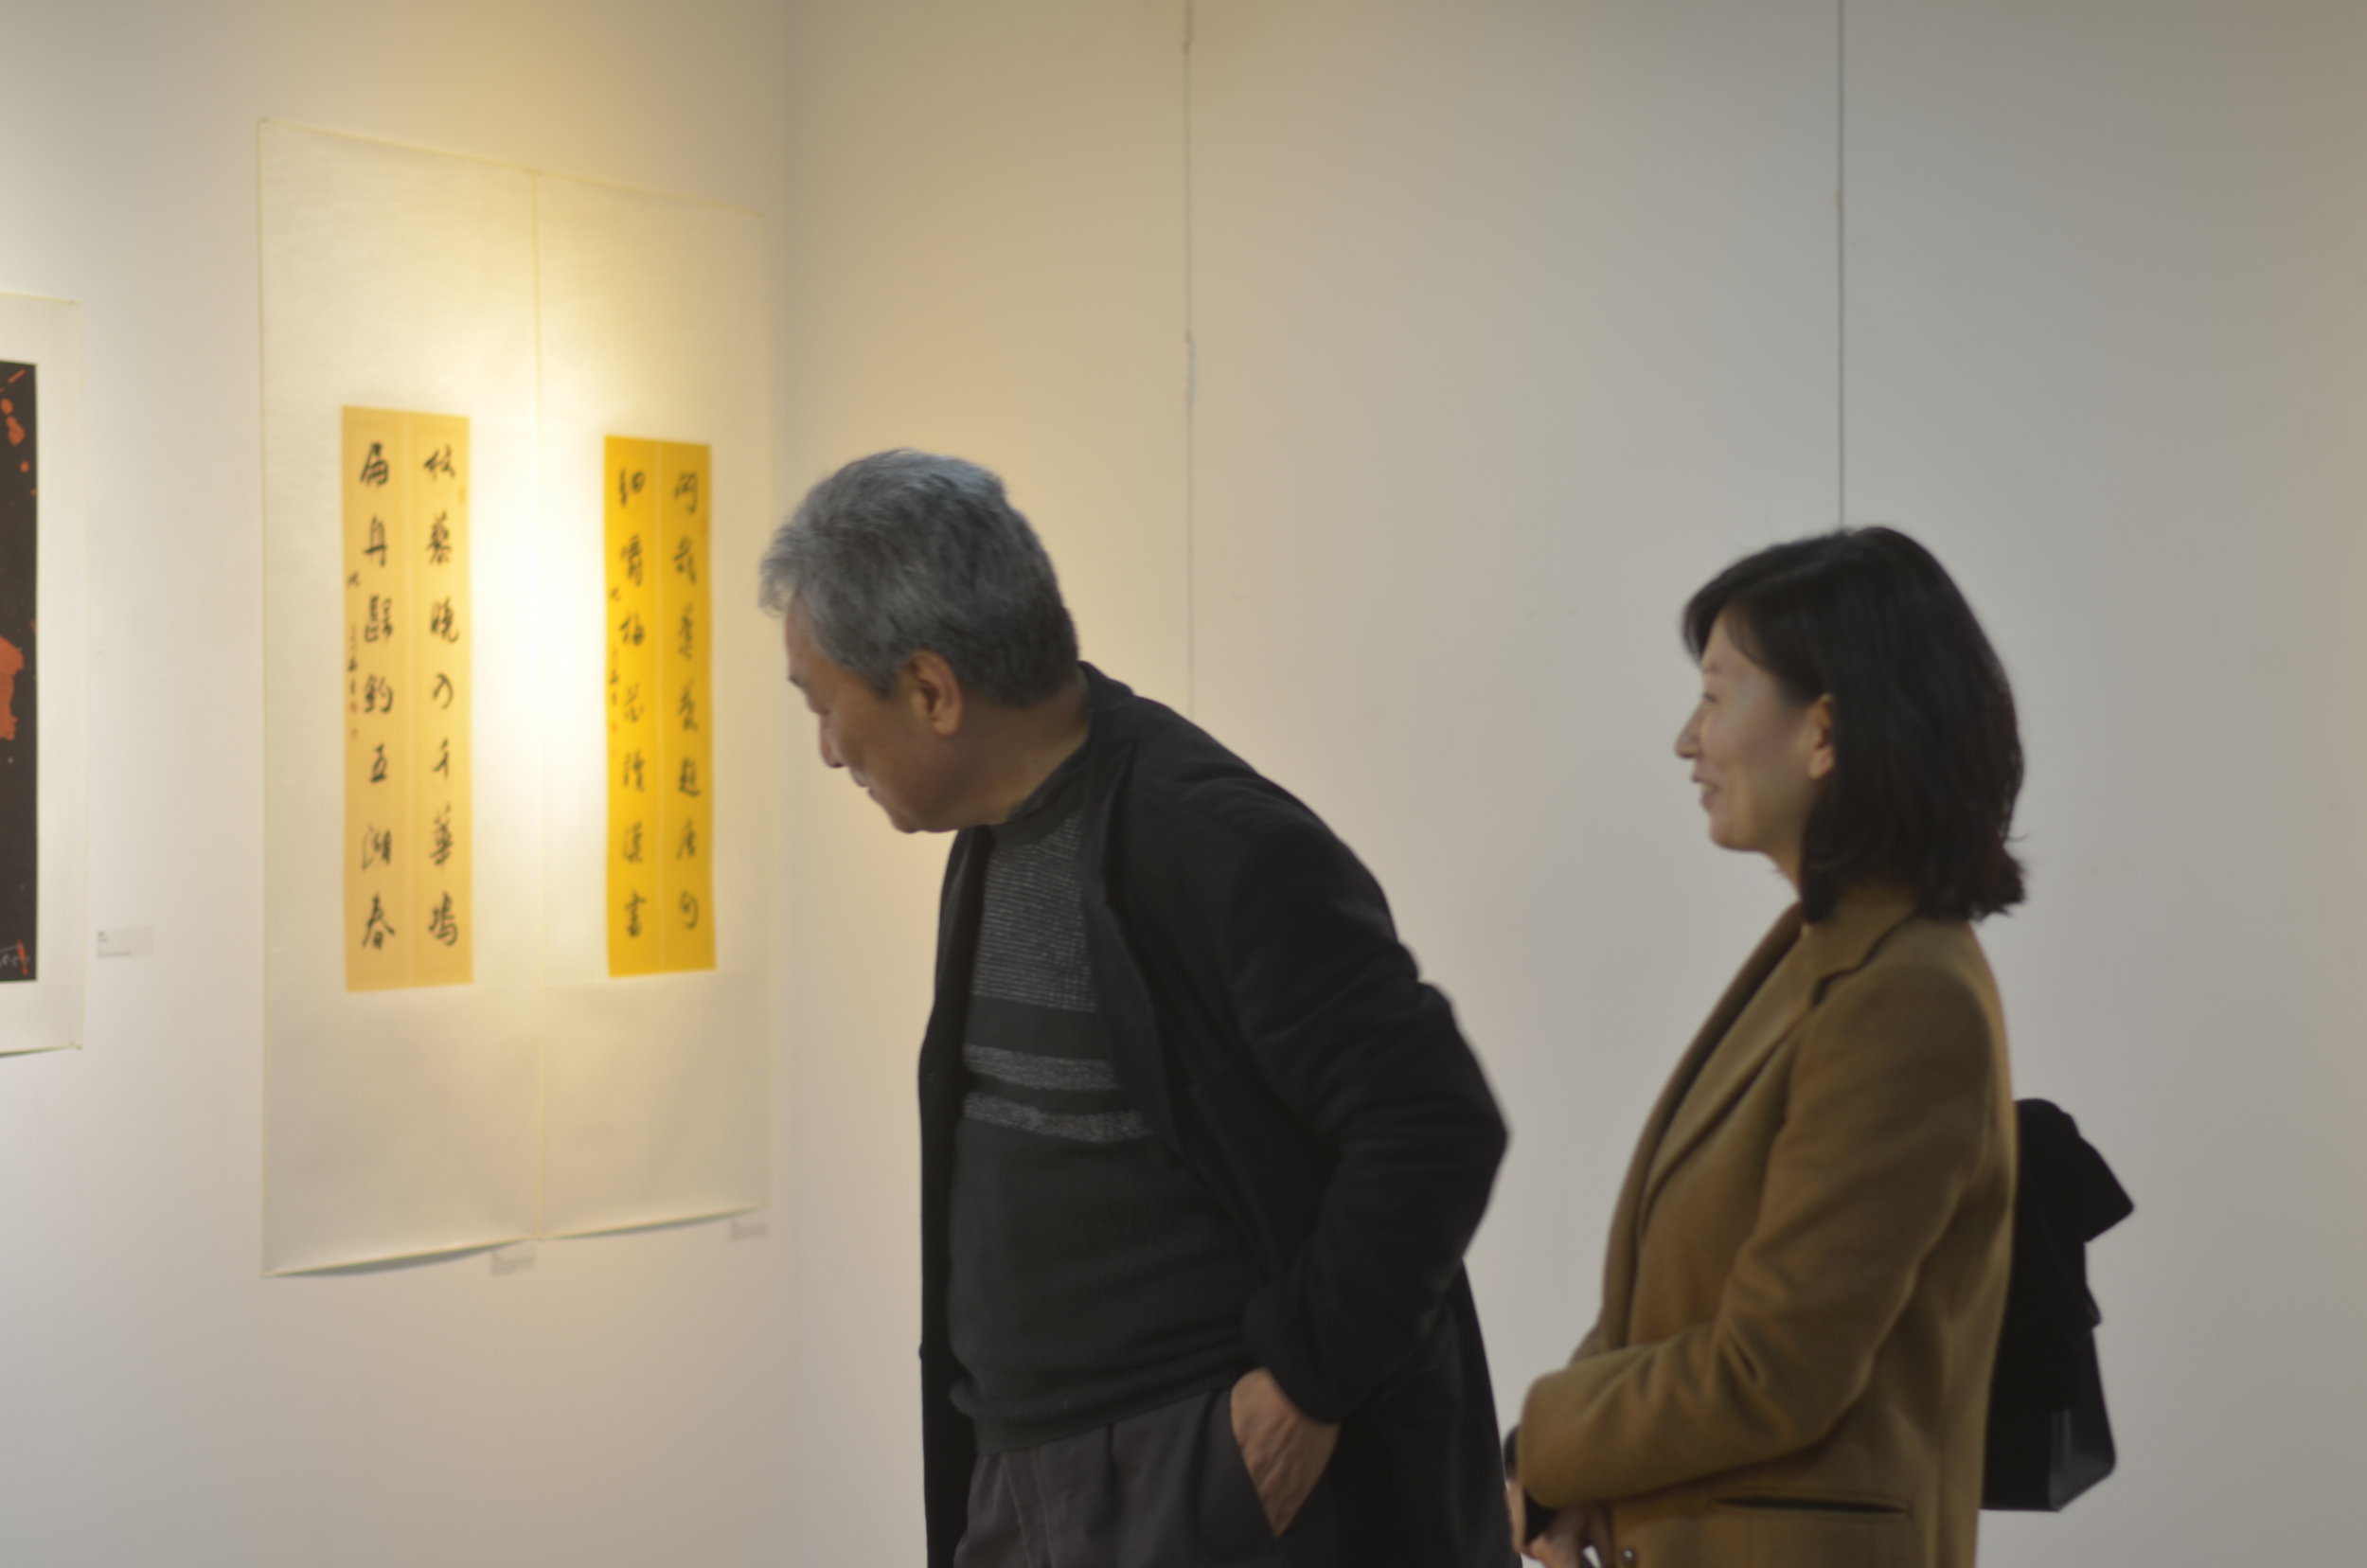 It was great experience not only for audiences, but also for Korean as well as Chinese artists to enjoy each other's works.